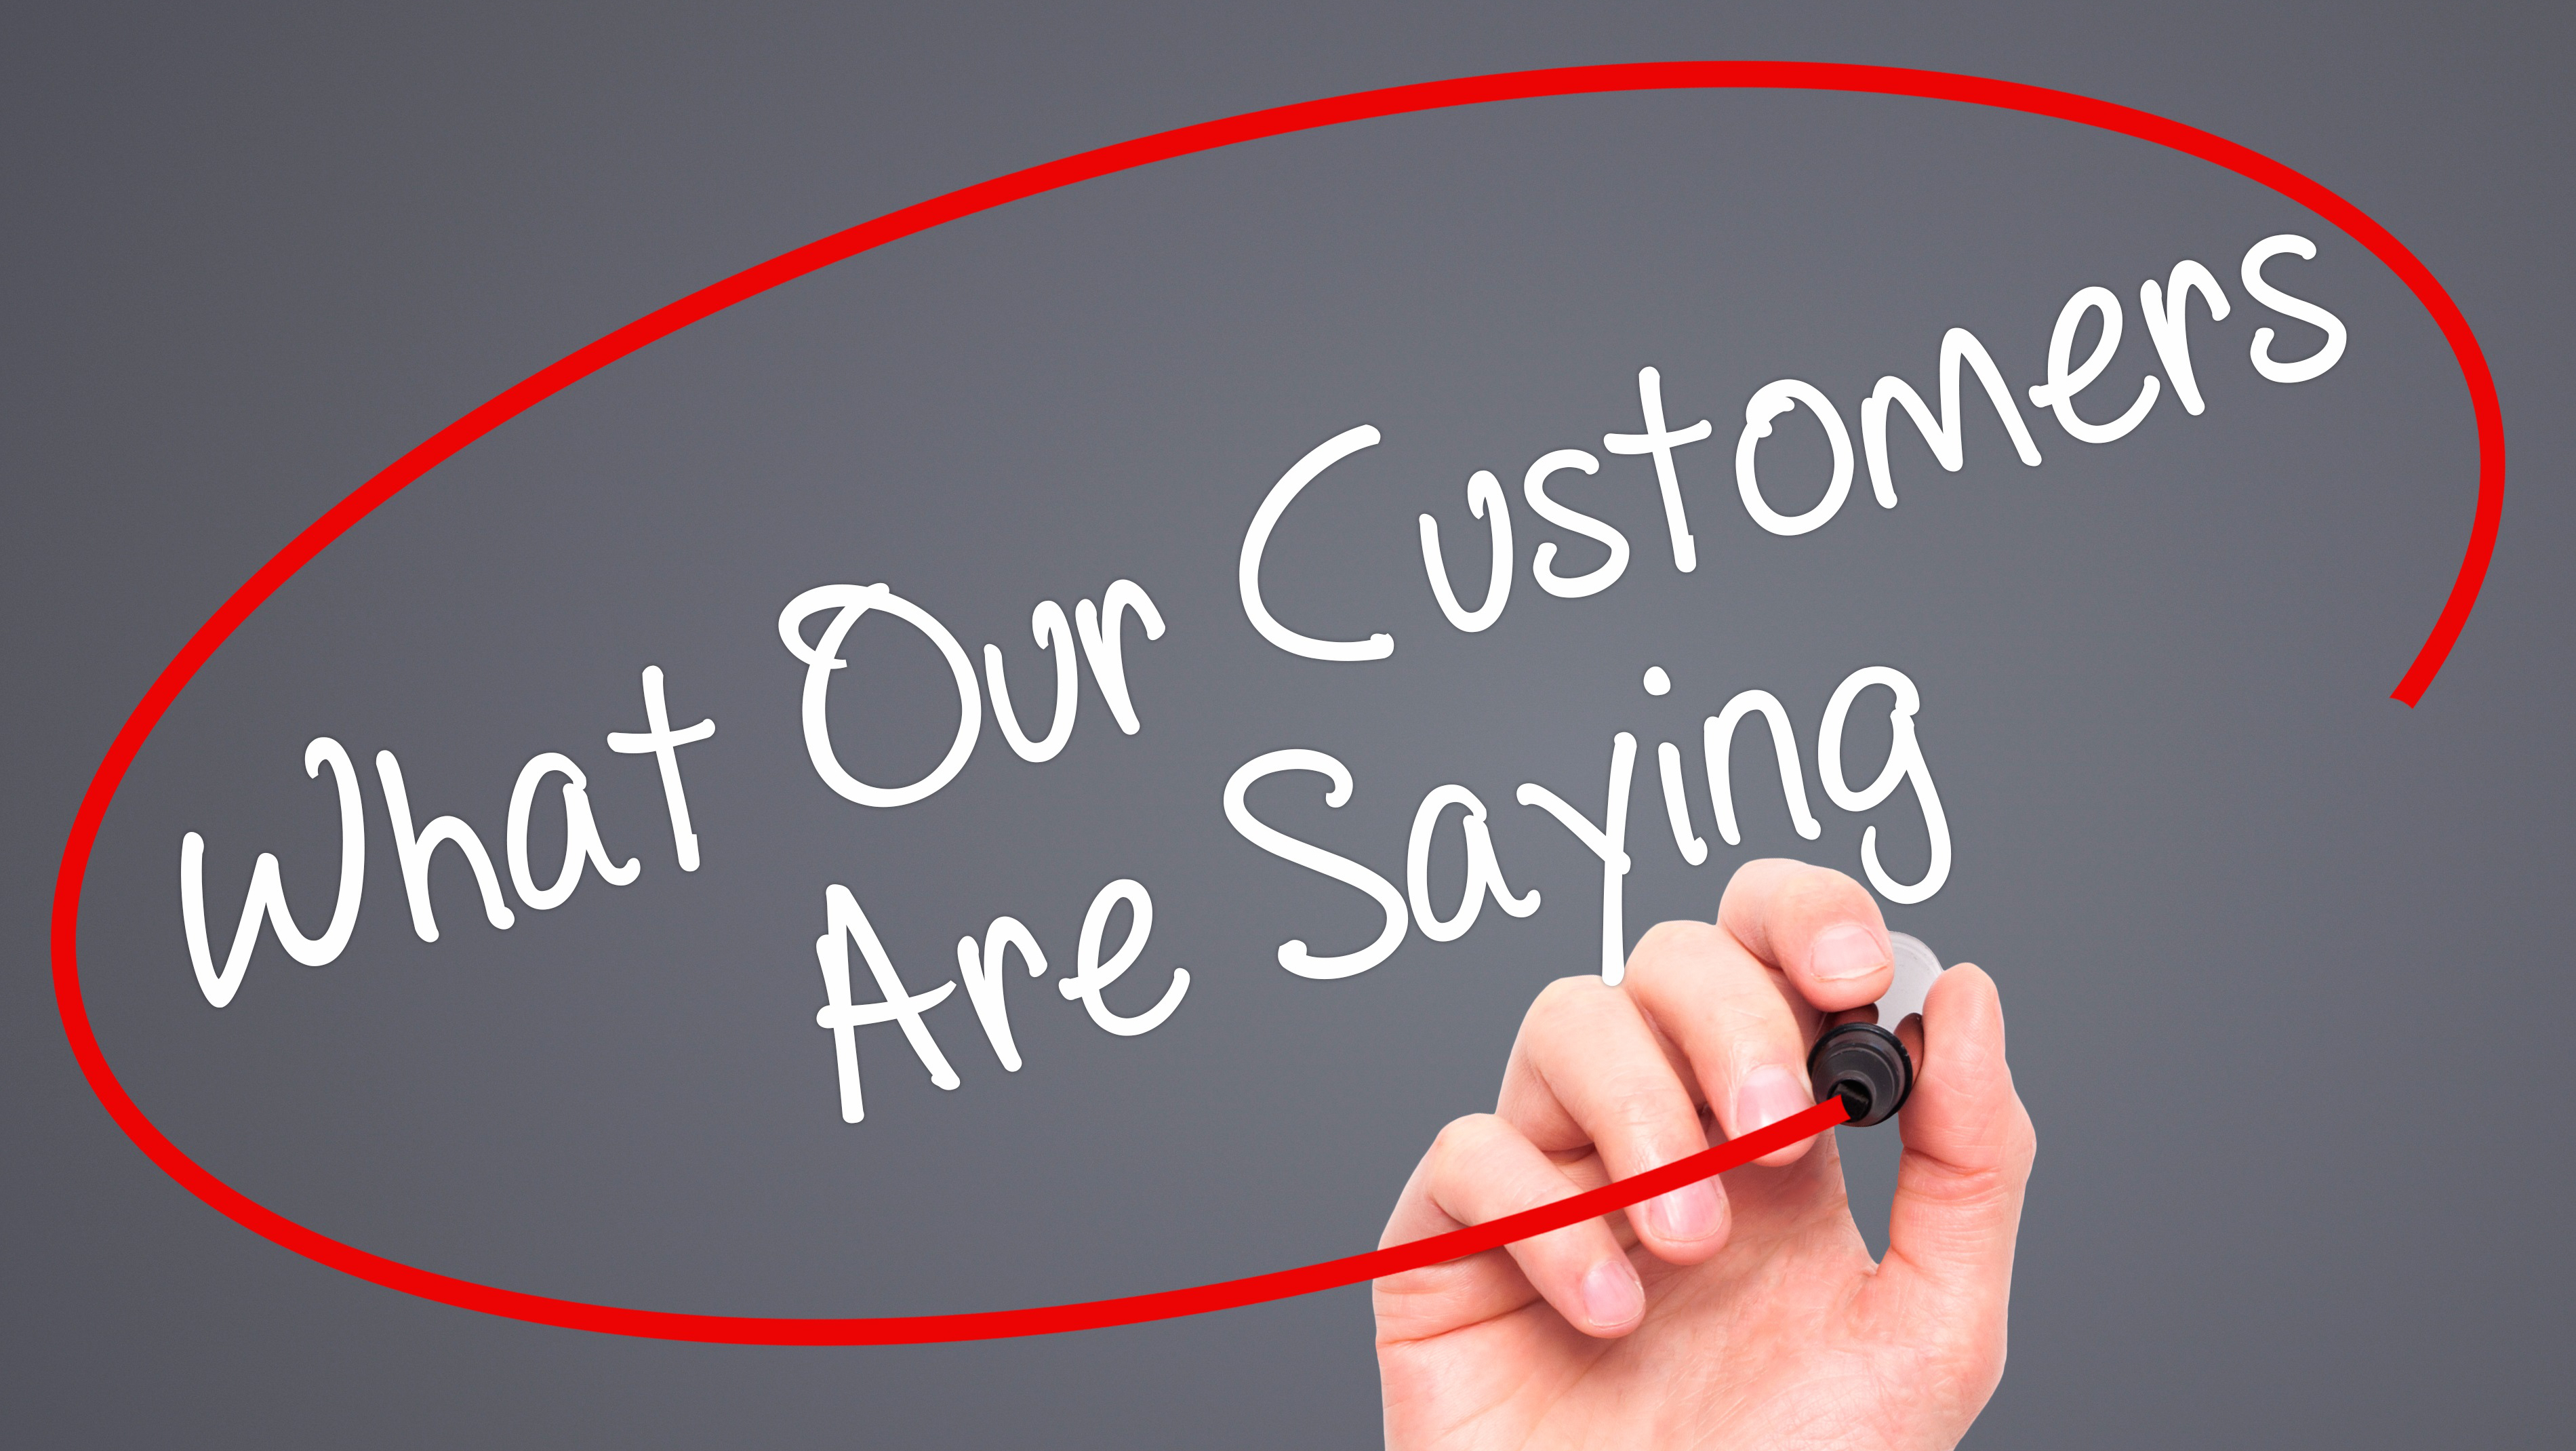 What Our Customers Are Saying